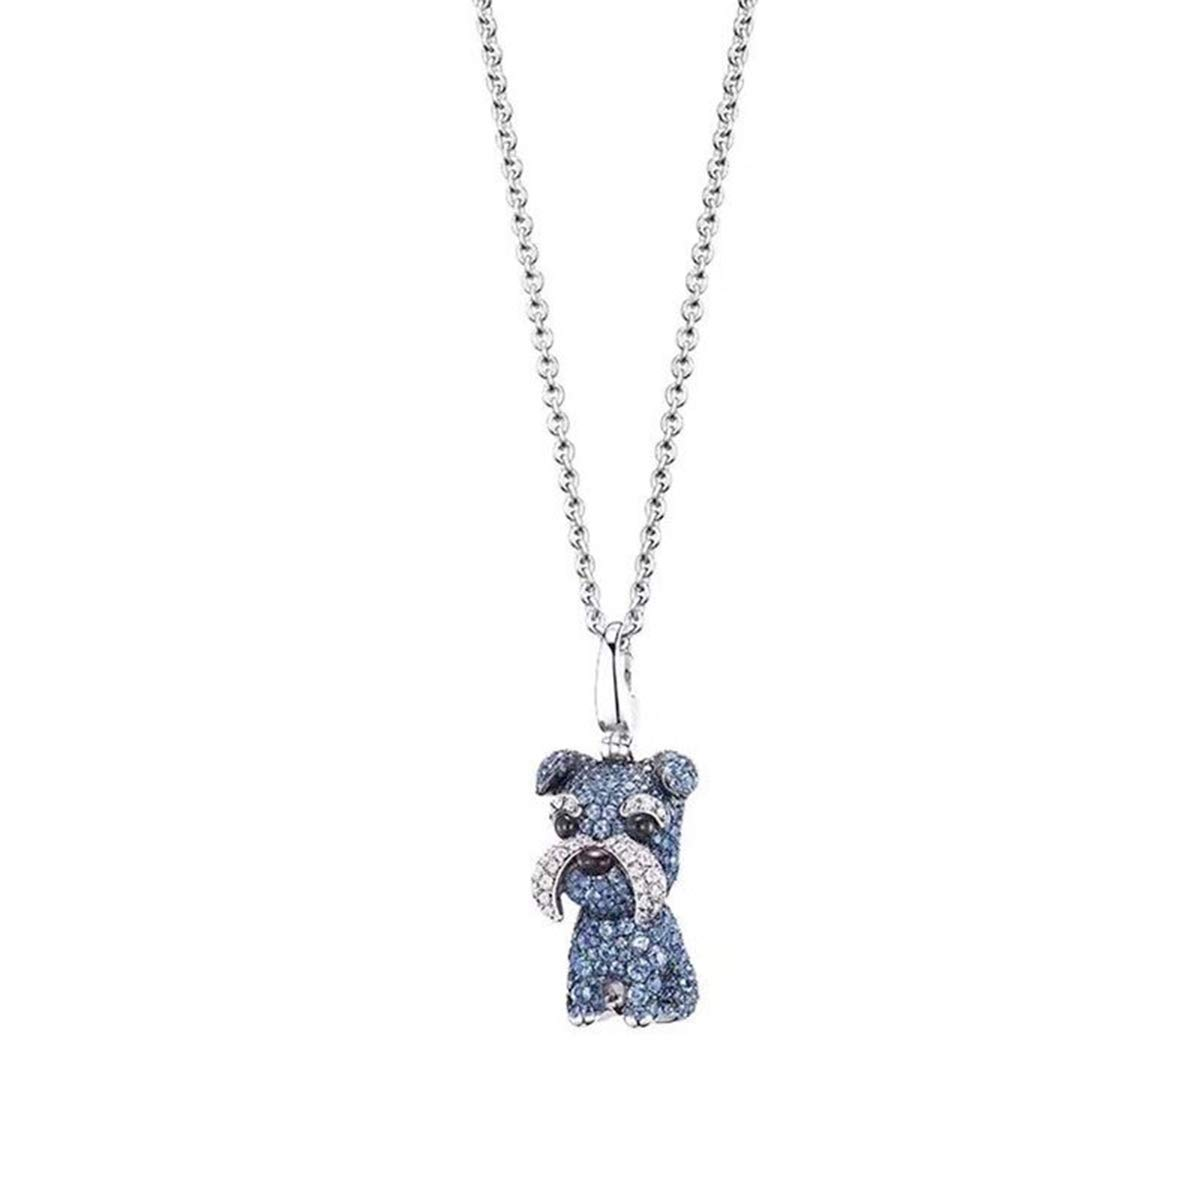 Onlyfo 925 Silver Schnauzer Dog Pave Crystal Pendant Necklace with Jewelry Box,Dog Necklace for Women (Blue)